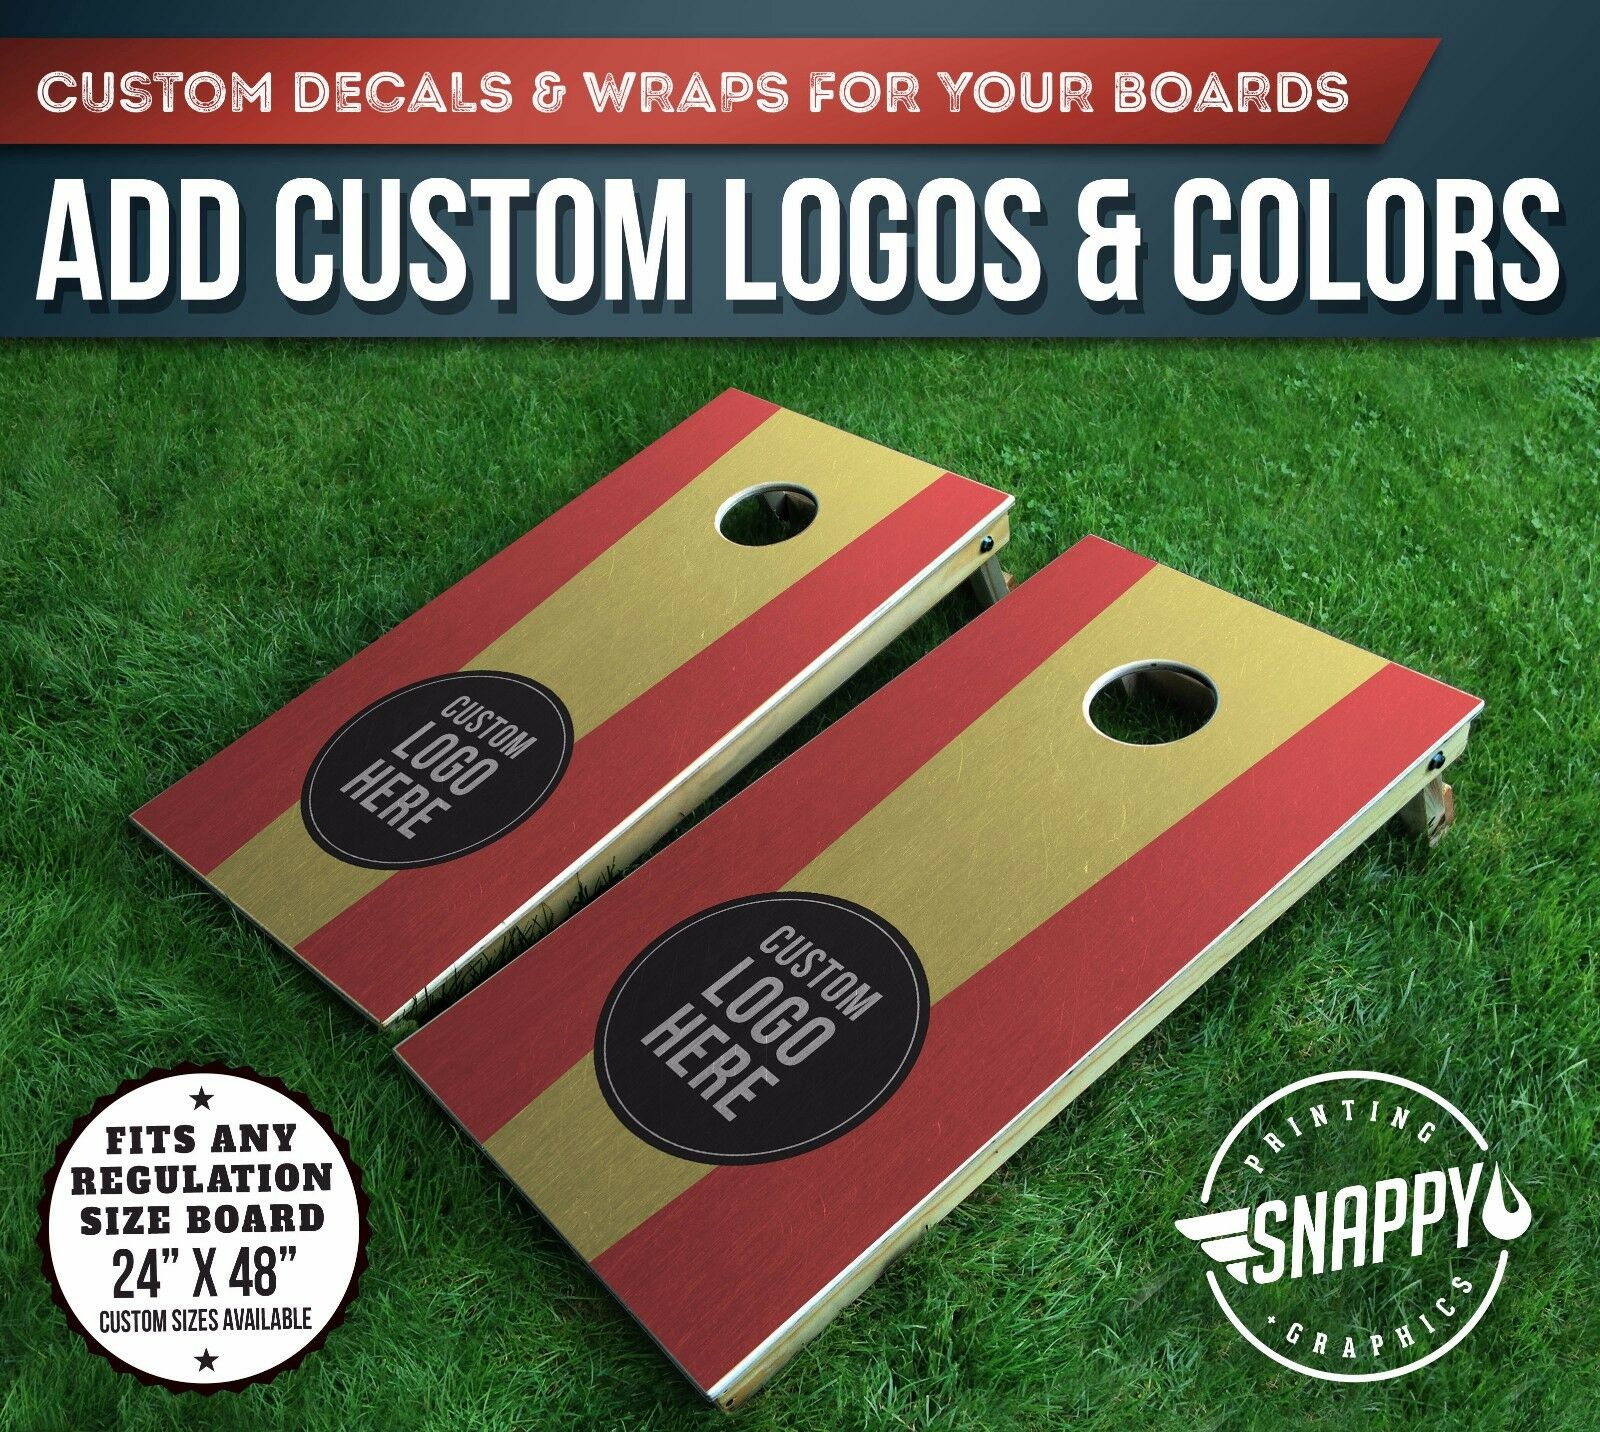 Cornhole Vinyl Decals, Bag Toss Board Wraps, ADD  YOUR OWN LOGO & COLORS - Pair  a lot of concessions